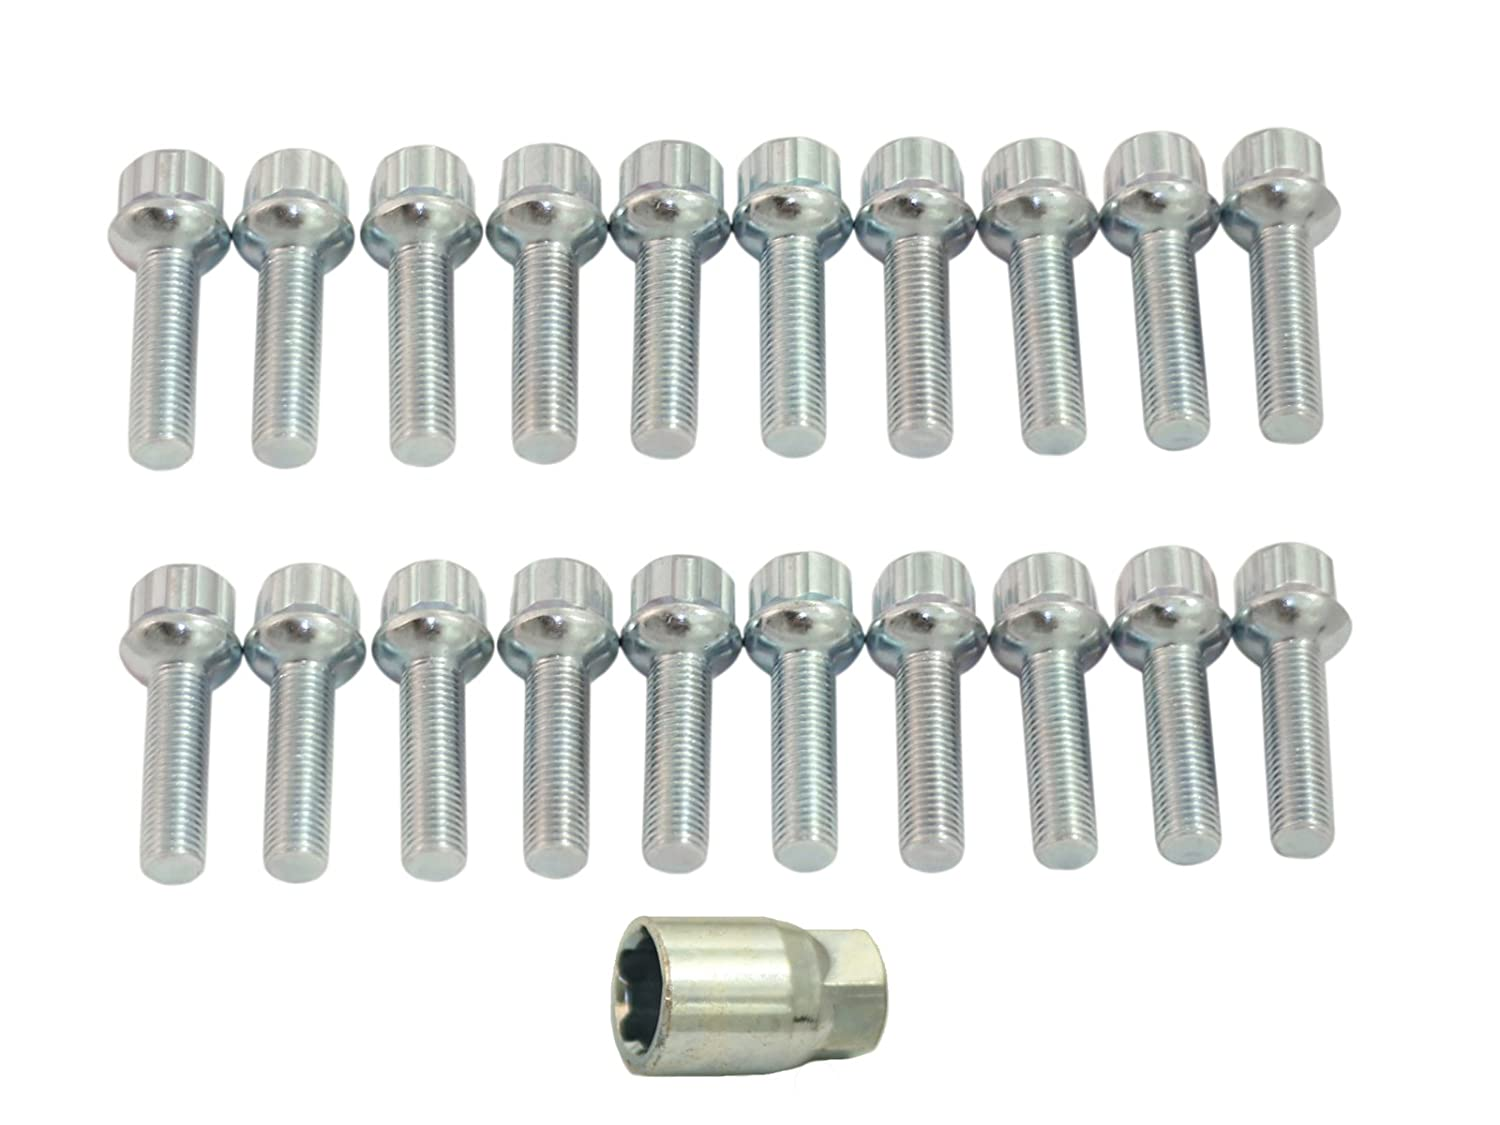 (20) Locking Silver Lug Bolts 12x1.5 (40mm Shank Length, Ball Seat) Includes Socket Key - Fits many Mercedes Benz (Check Description for exact years) - C230 C240 C280 C320 E320 E420 E430 AMG SLK CLK Precision European Motorwerks